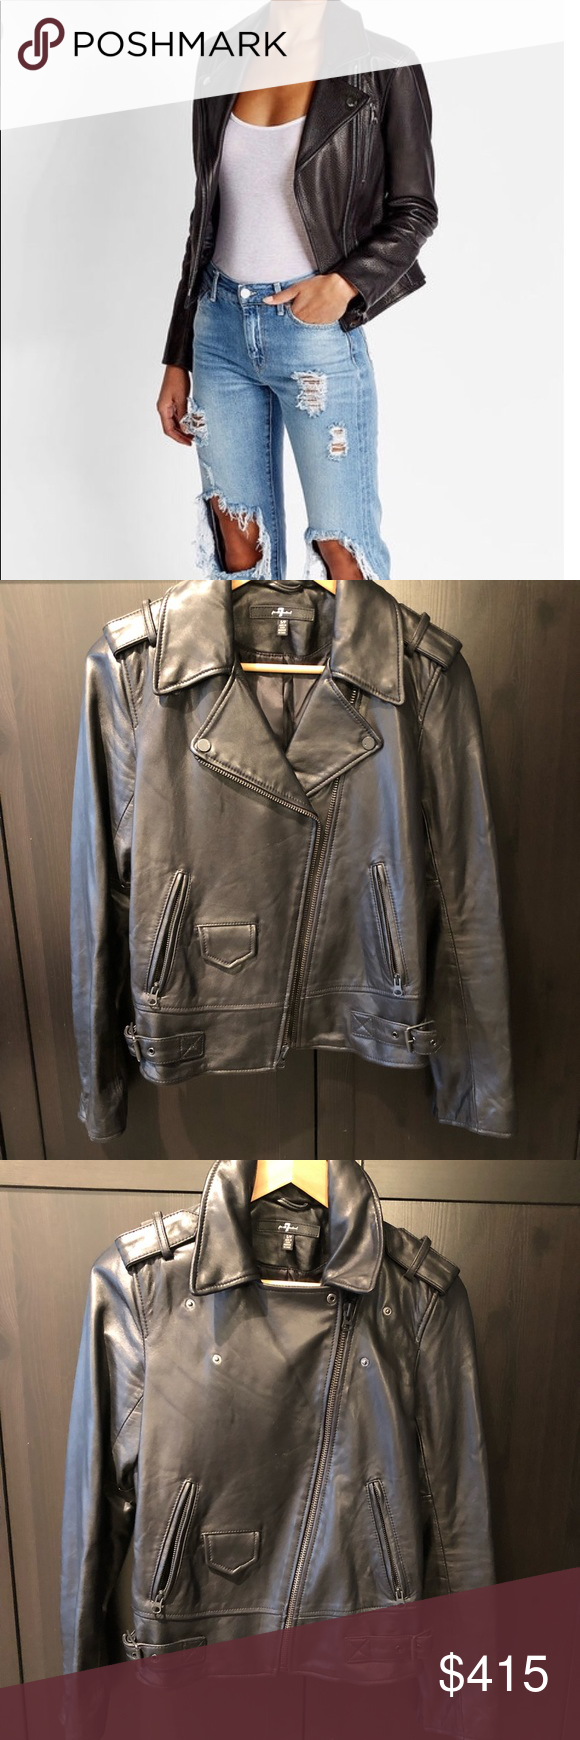 New Mens Leather Motorcycle Jacket Slim fit Leather Jacket Coat A507